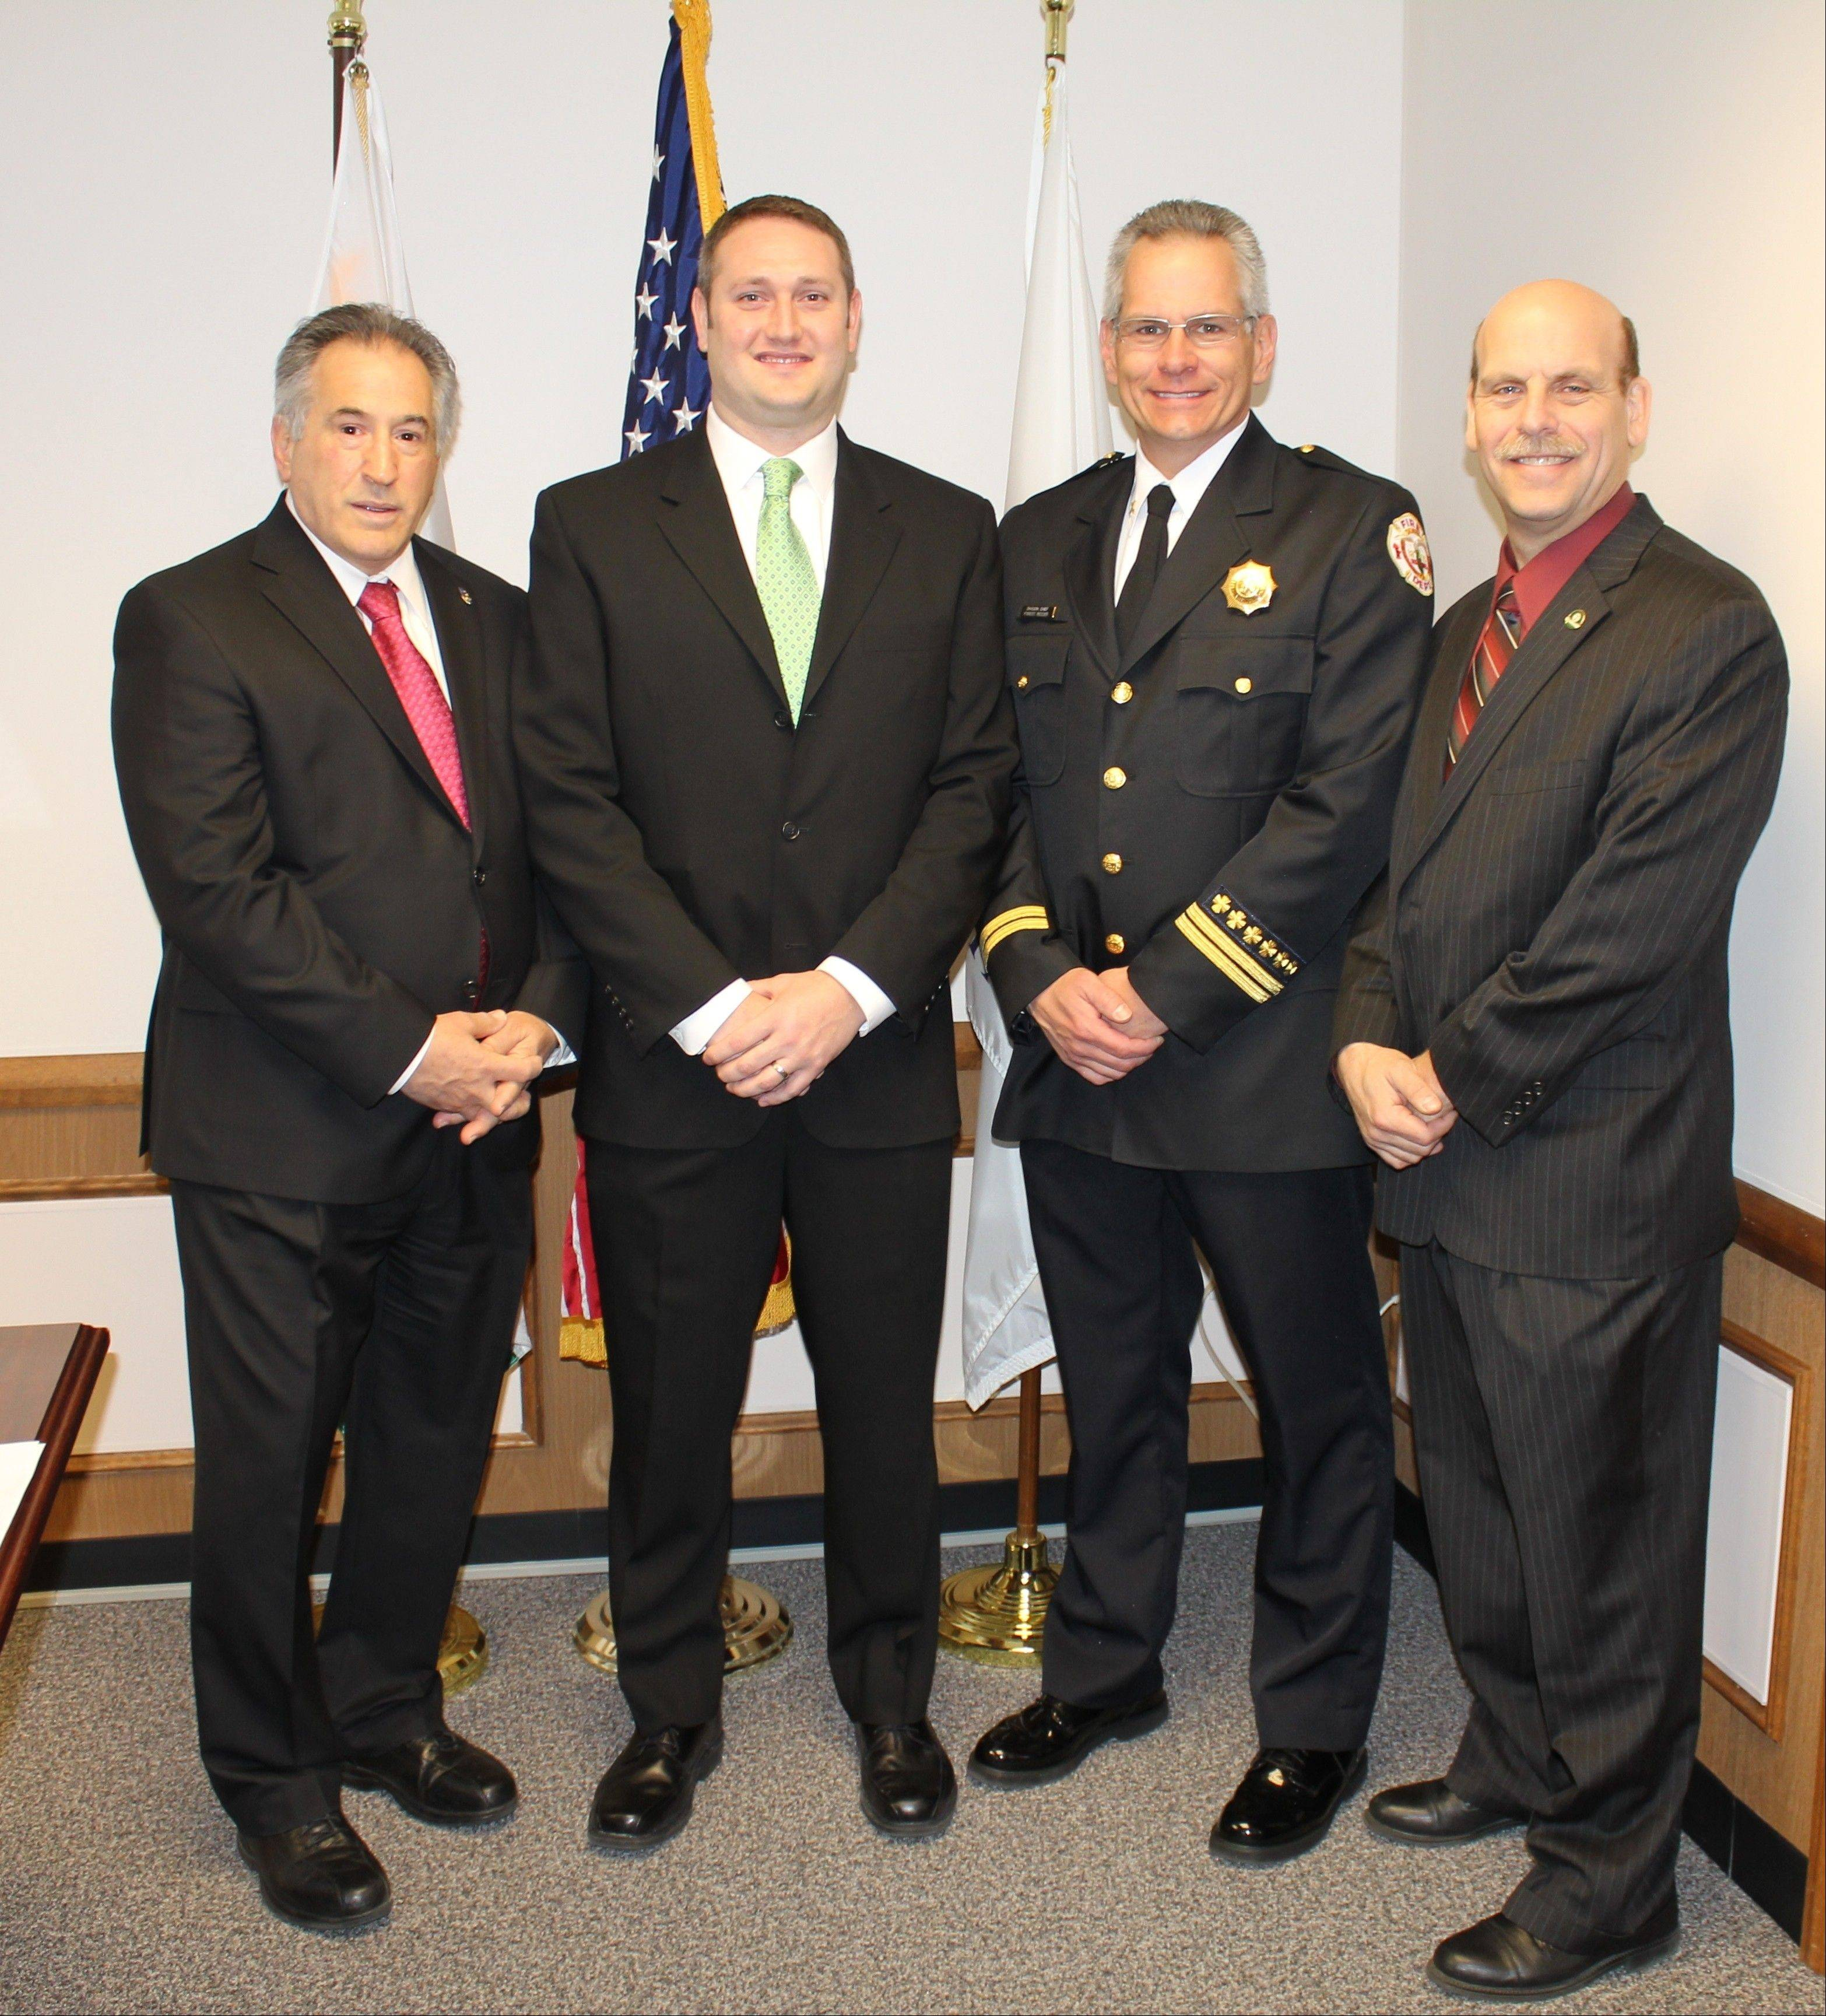 Pictured in the mayor's office, from left, following the swearing-in ceremony are: Des Plaines Mayor Martin J. Moylan, newly sworn Firefighter/Paramedic Christopher Jannusch, Training and Safety Officer Forest Reeder and Fire Chief Alan Wax.